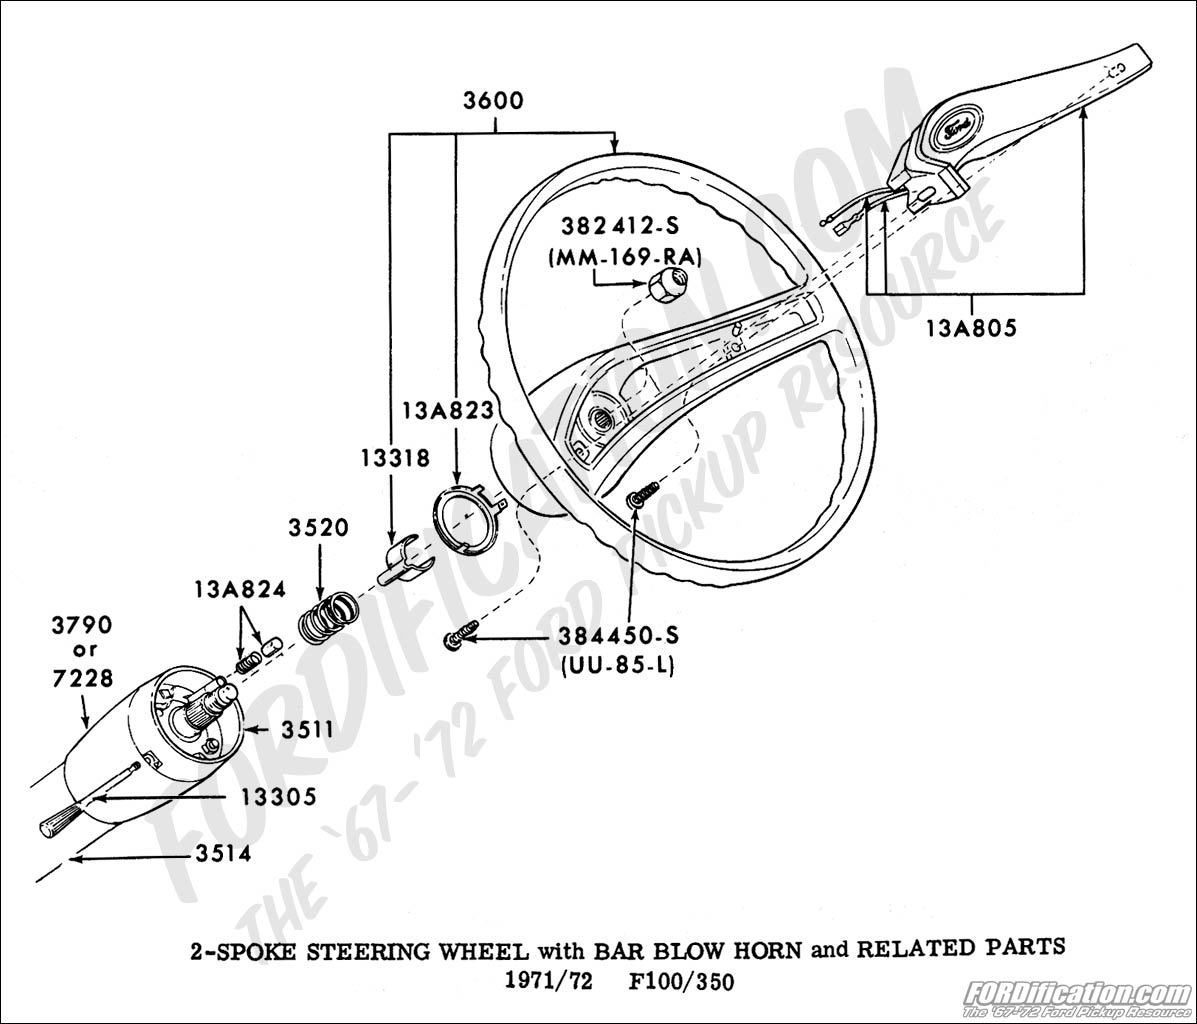 1991 S10 Steering Column Wiring Diagram Free Download Reveolution 1965 Chevy Pickup Picture Dodge 360 Engine Image For 1963 Ford